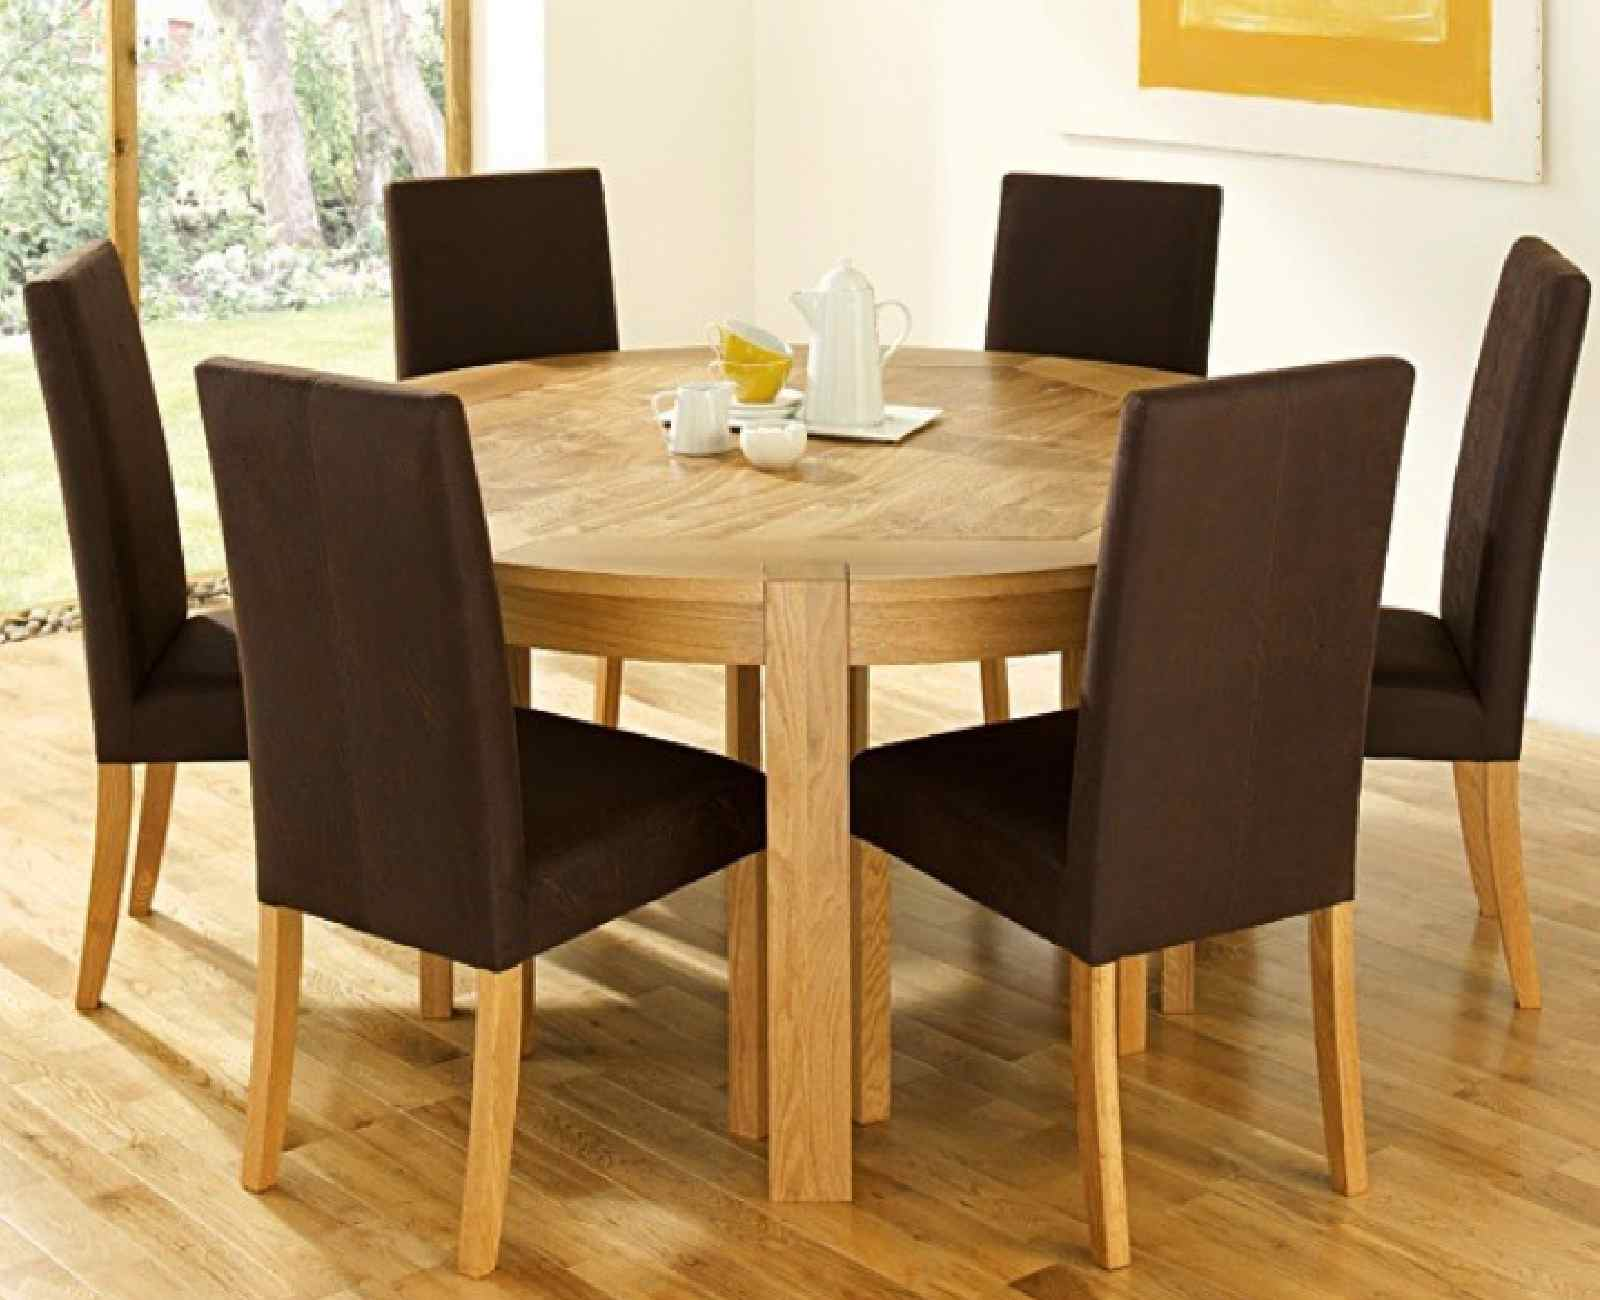 Getting a round dining room table for 6 by your own for Comedores redondos de madera